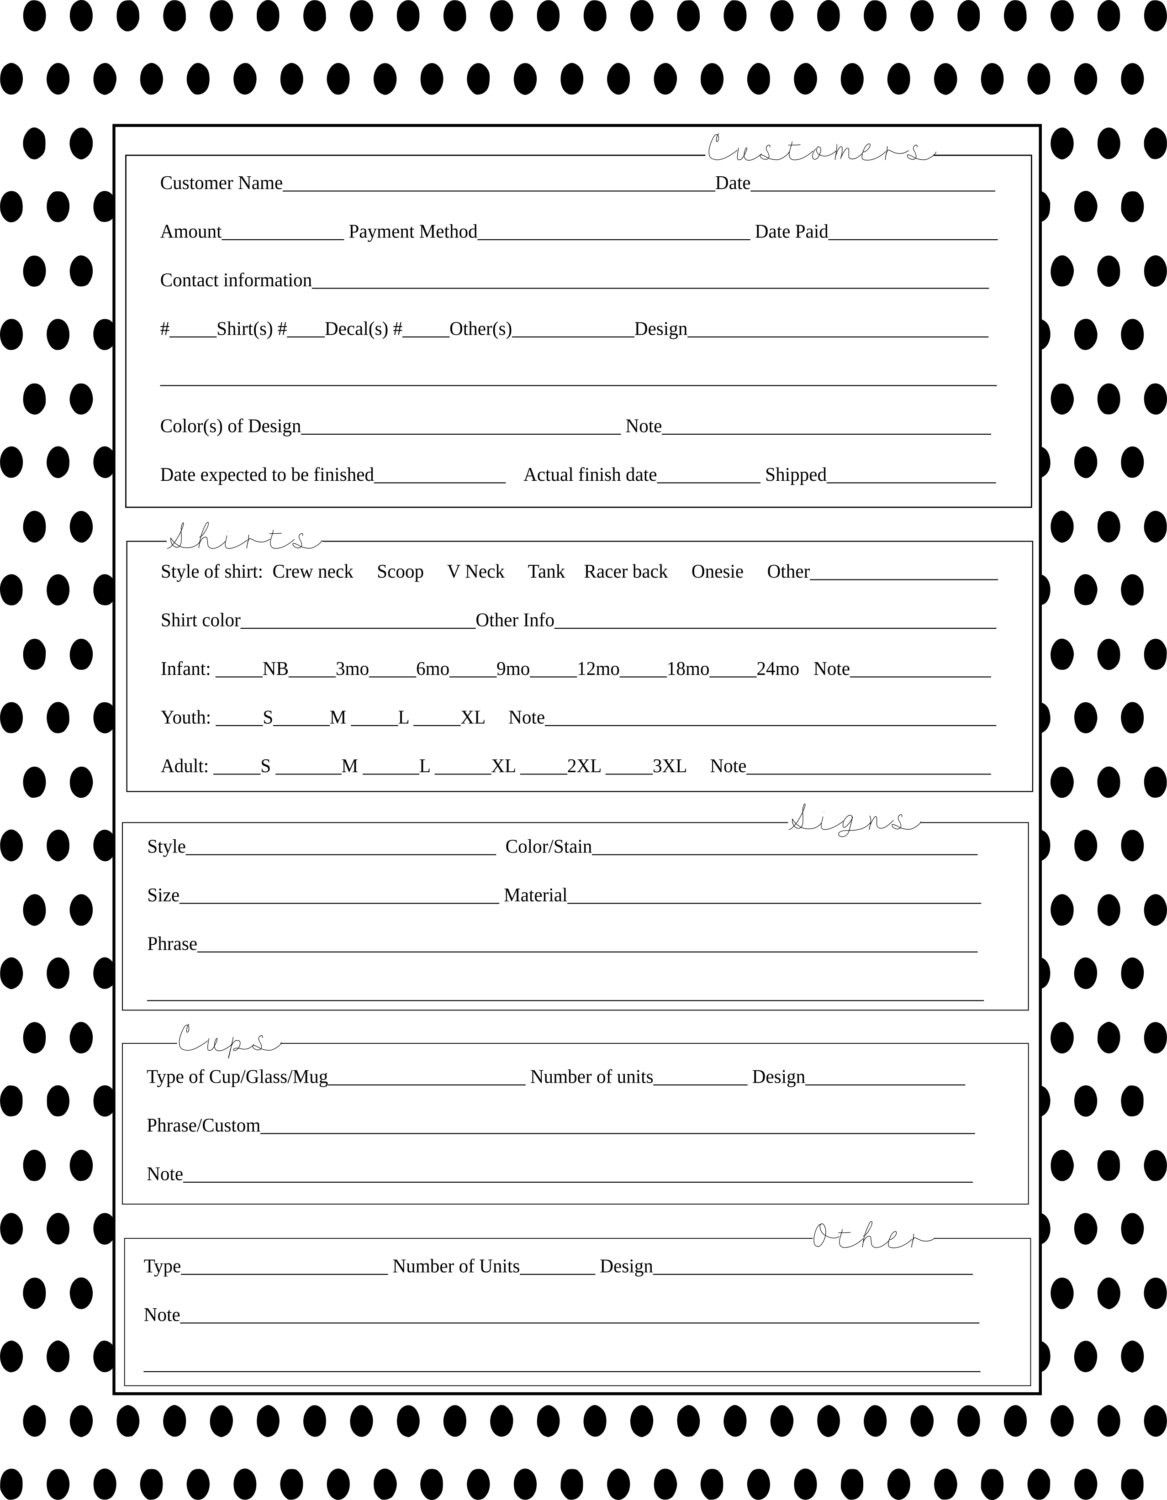 order form for vinyl projects  Polka Dot Order Form Vinyl Business SVG by MemoriesOfMagnitude - order form for vinyl projects